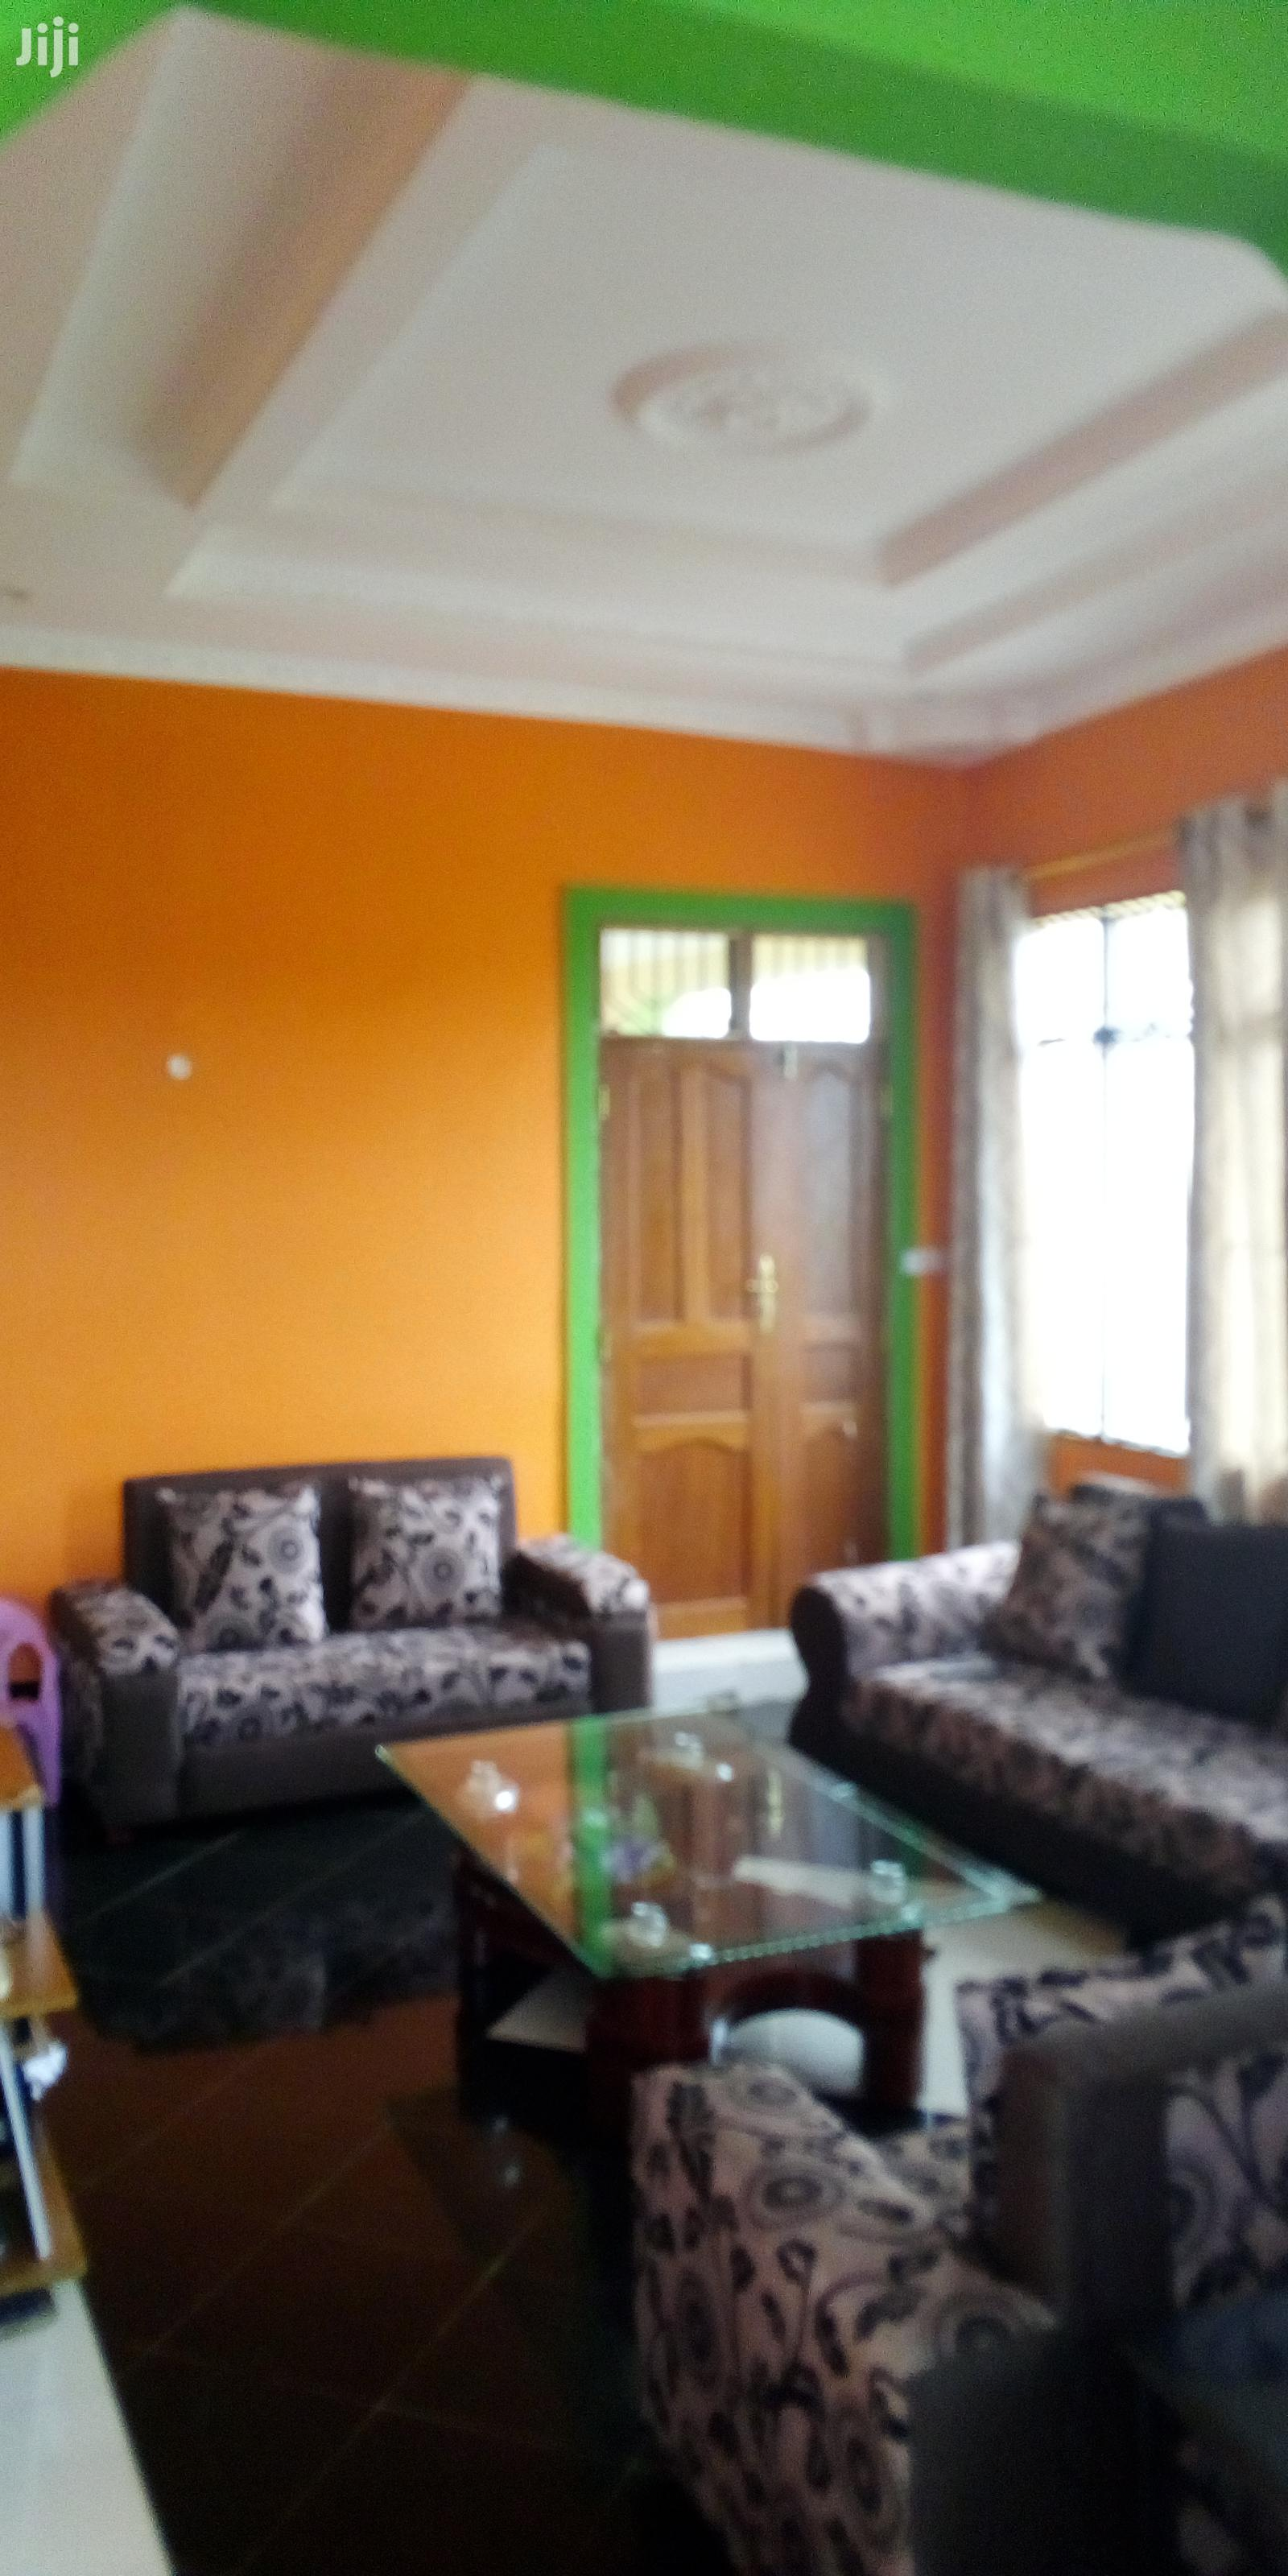 House For Sale 3 Bedrooms At Kibaha | Houses & Apartments For Sale for sale in Bagamoyo, Pwani Region, Tanzania